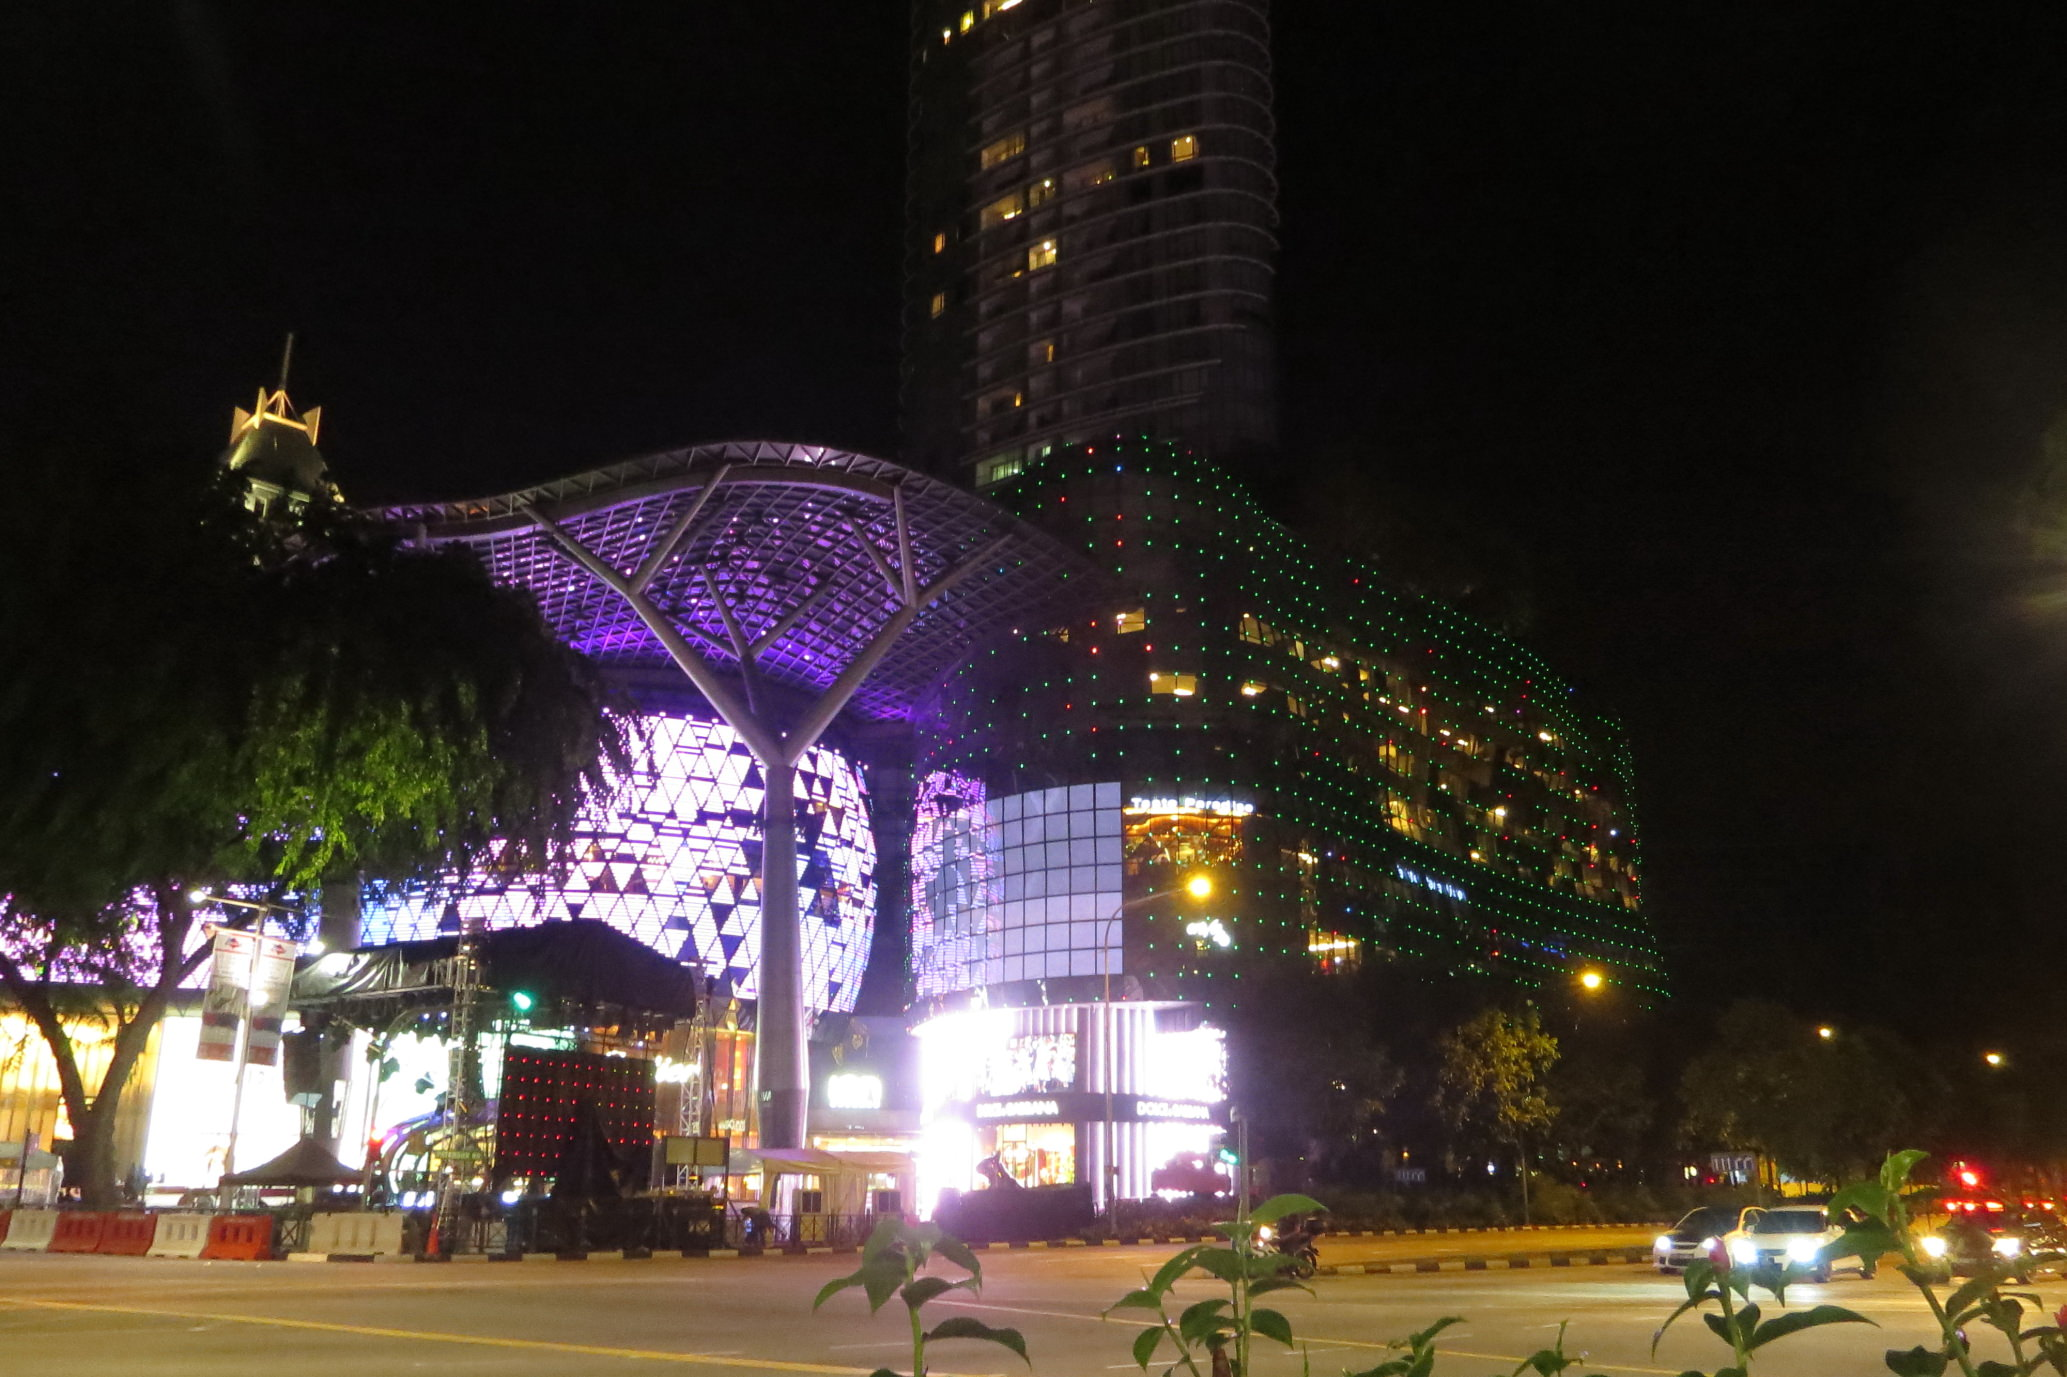 Orchard Road by night in Singapore